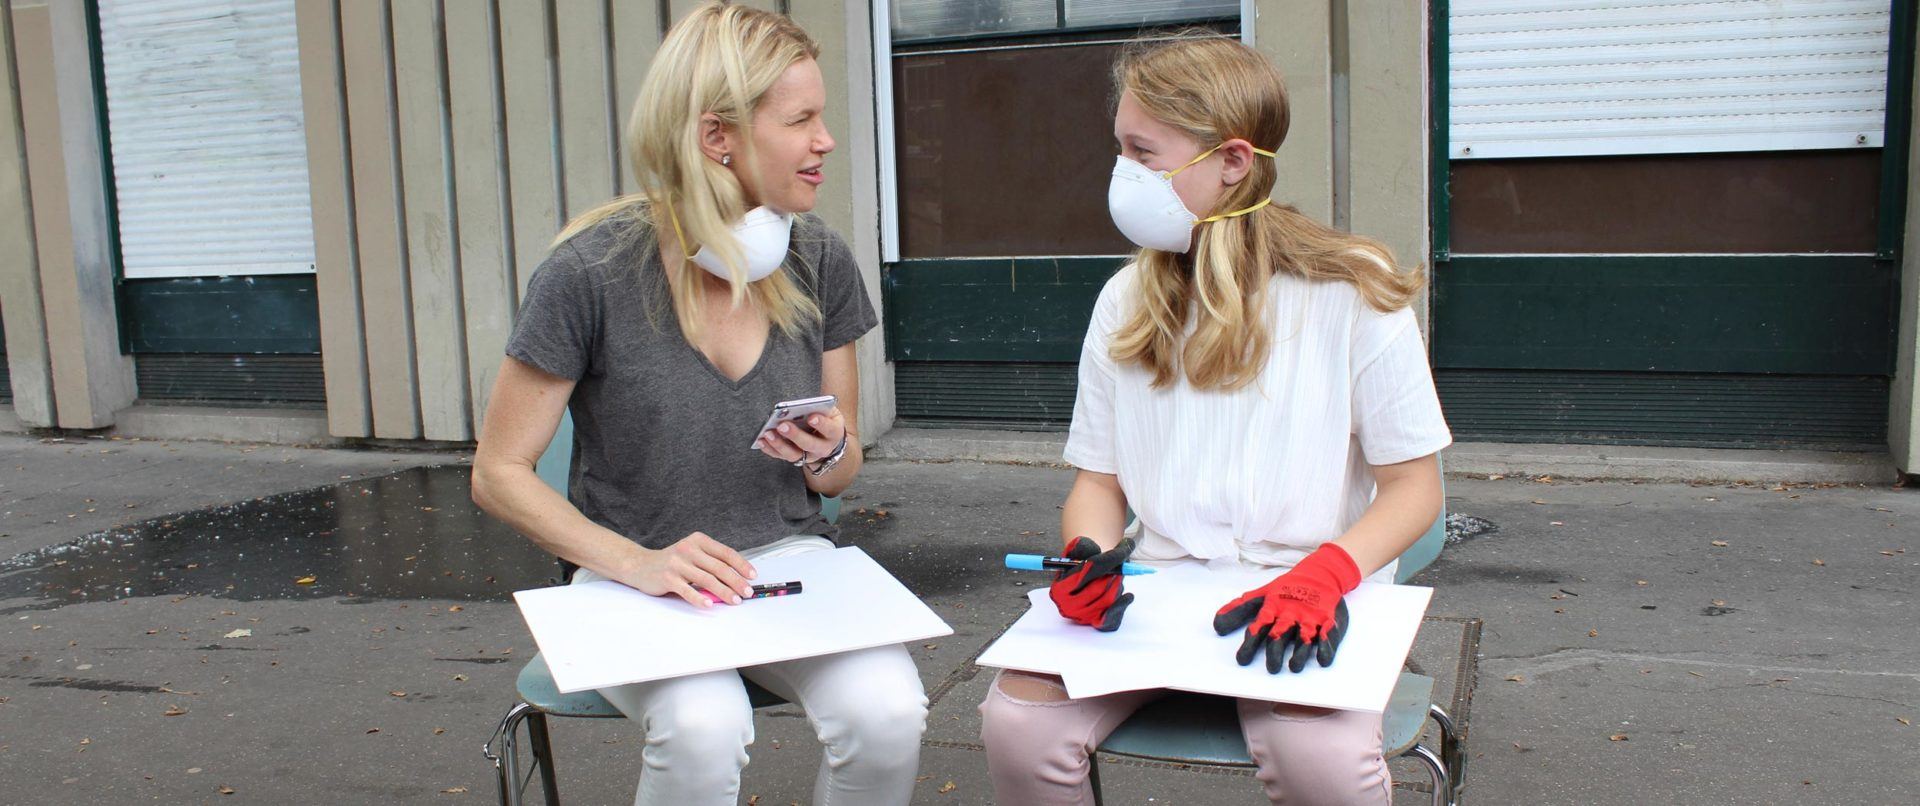 paris-street-art-fun-activity-teens